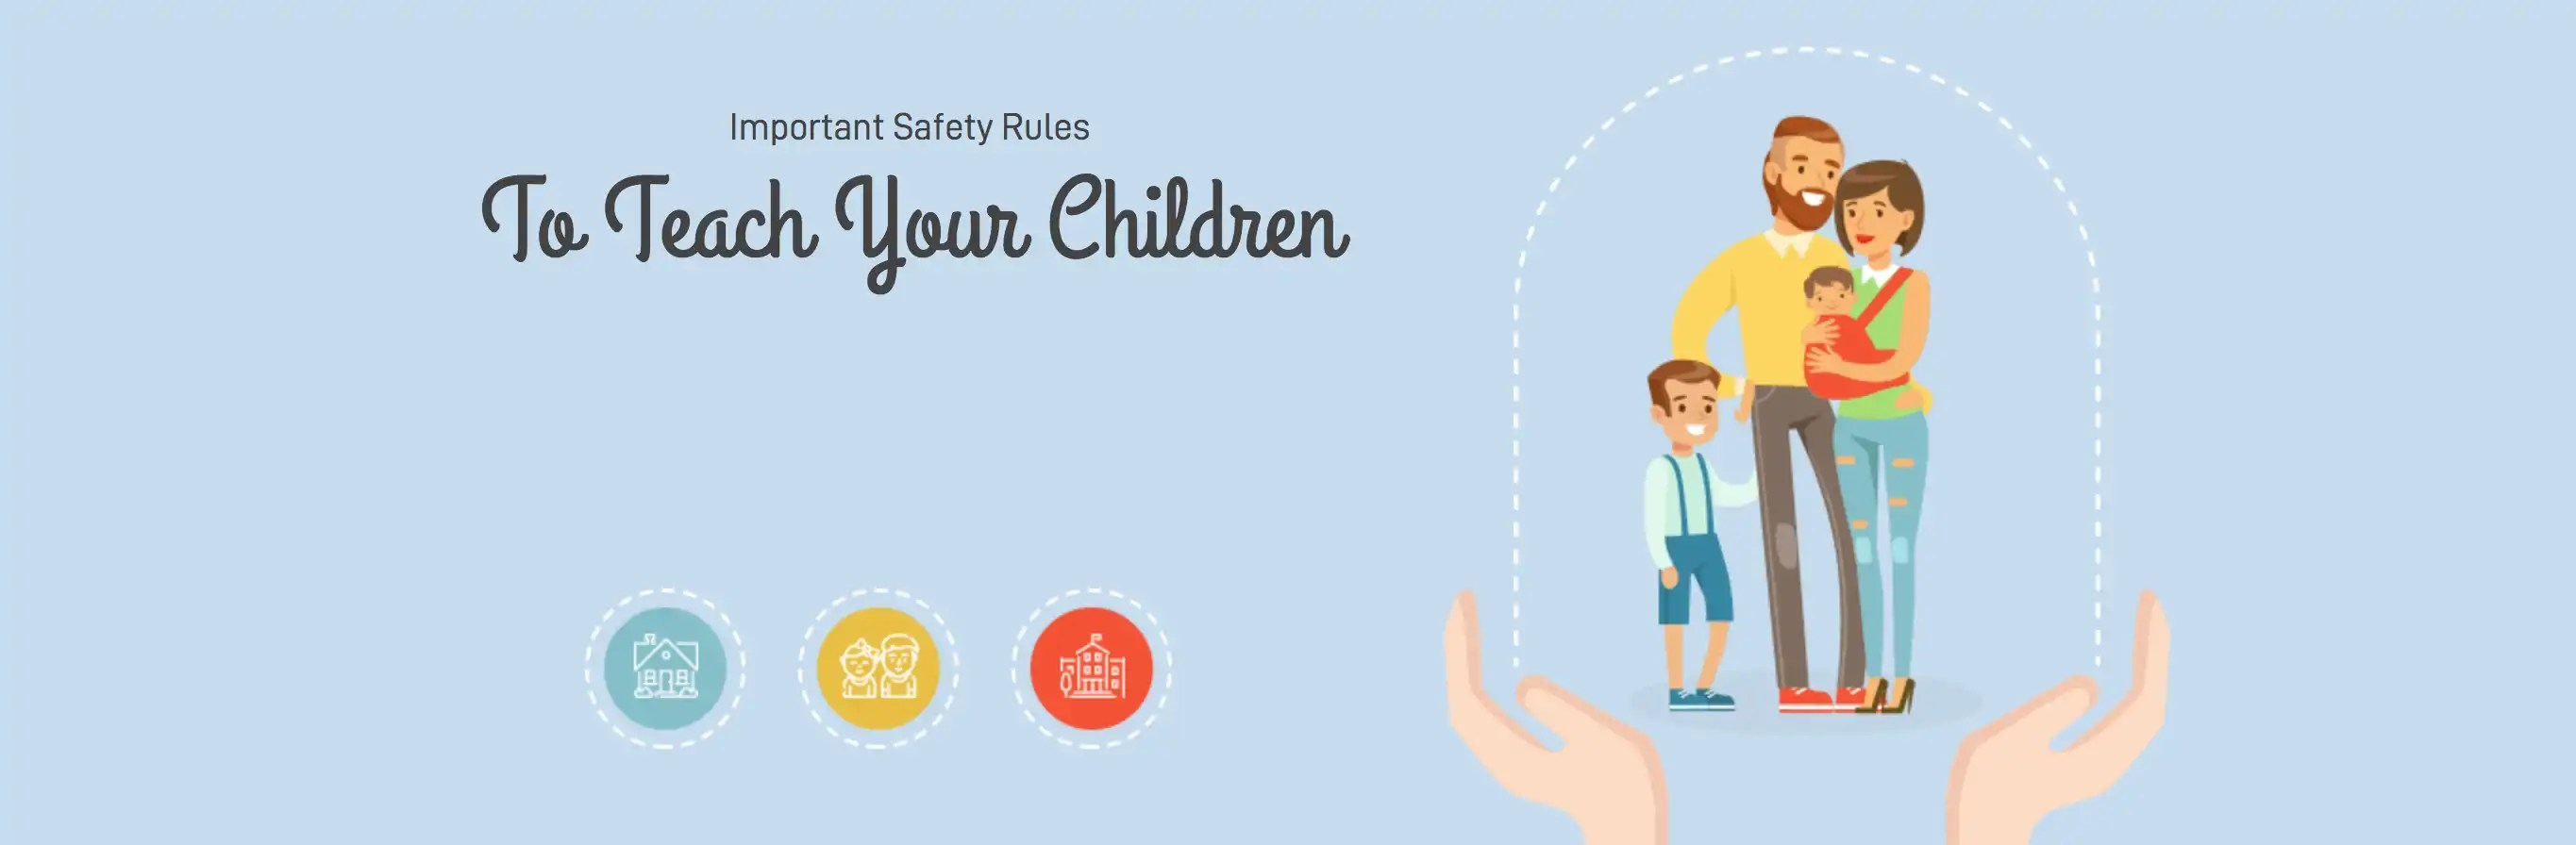 Important Safety Rules To Teach Your Children